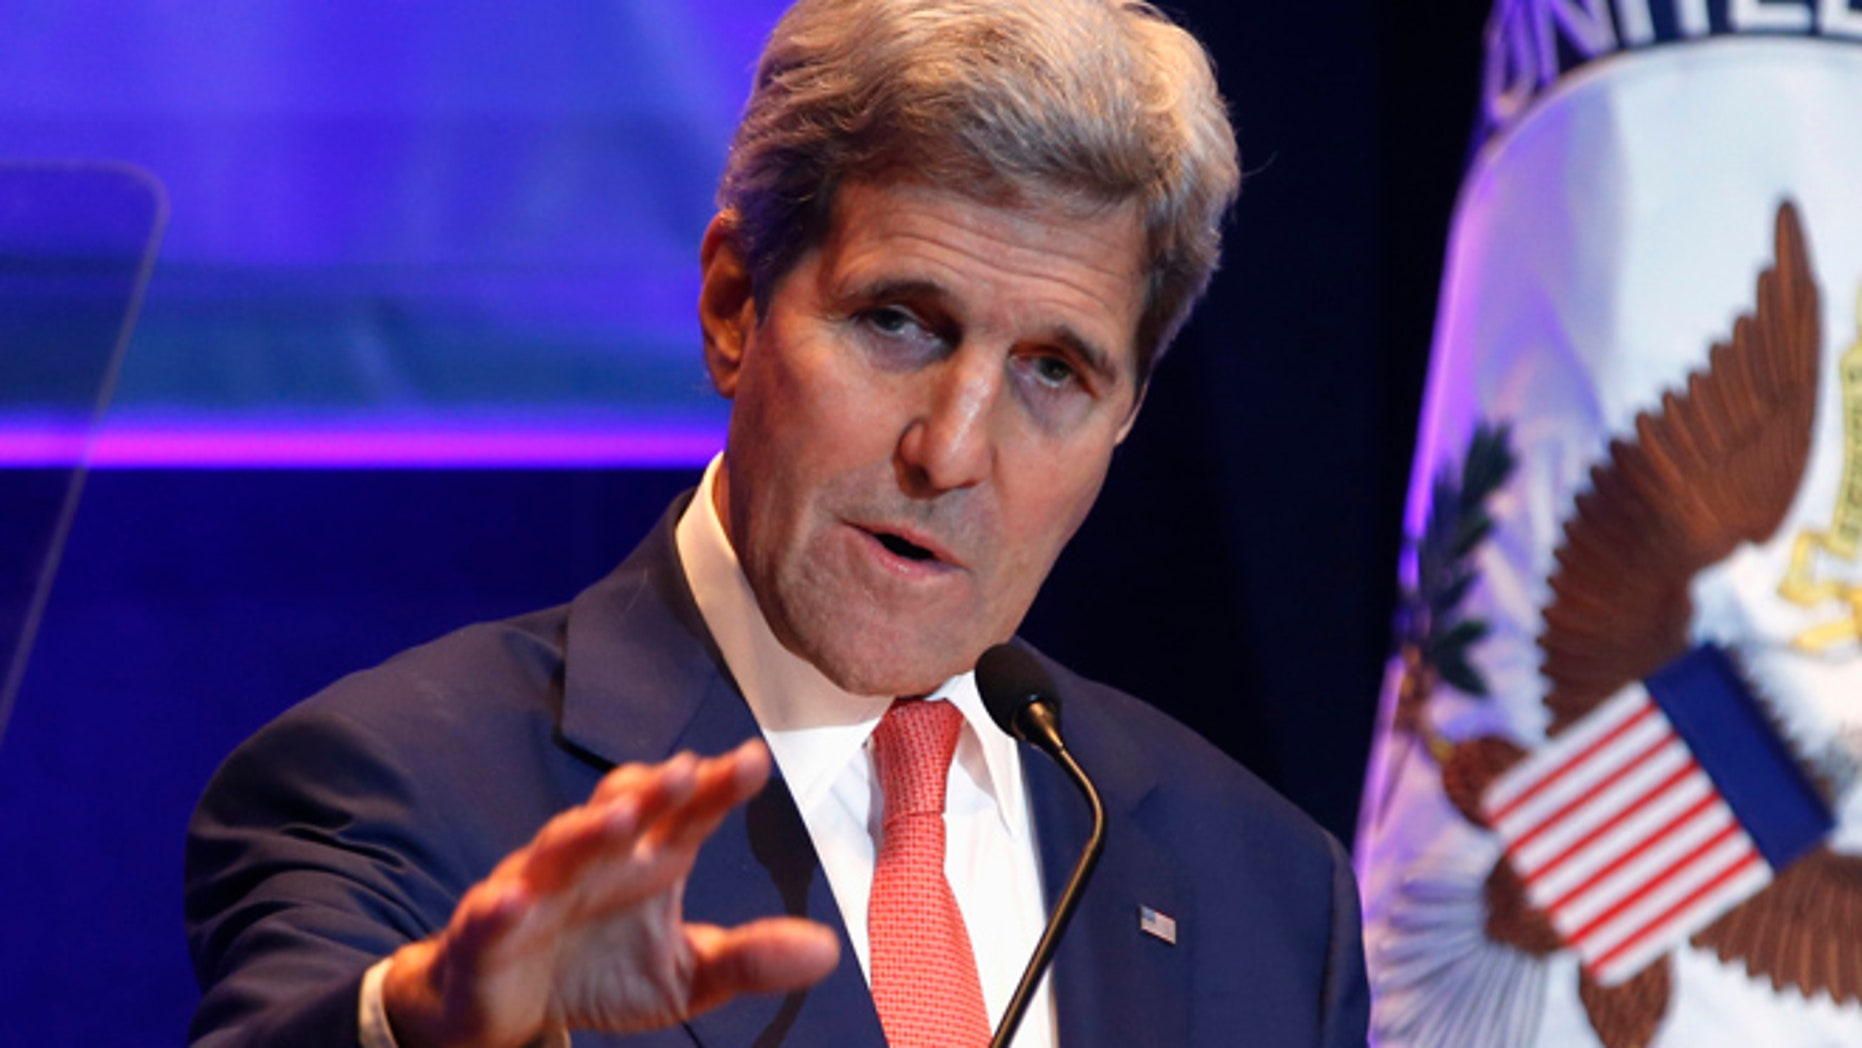 Nov. 10, 2015: Secretary of State John Kerry speaks at Old Dominion University in Norfolk, Va.